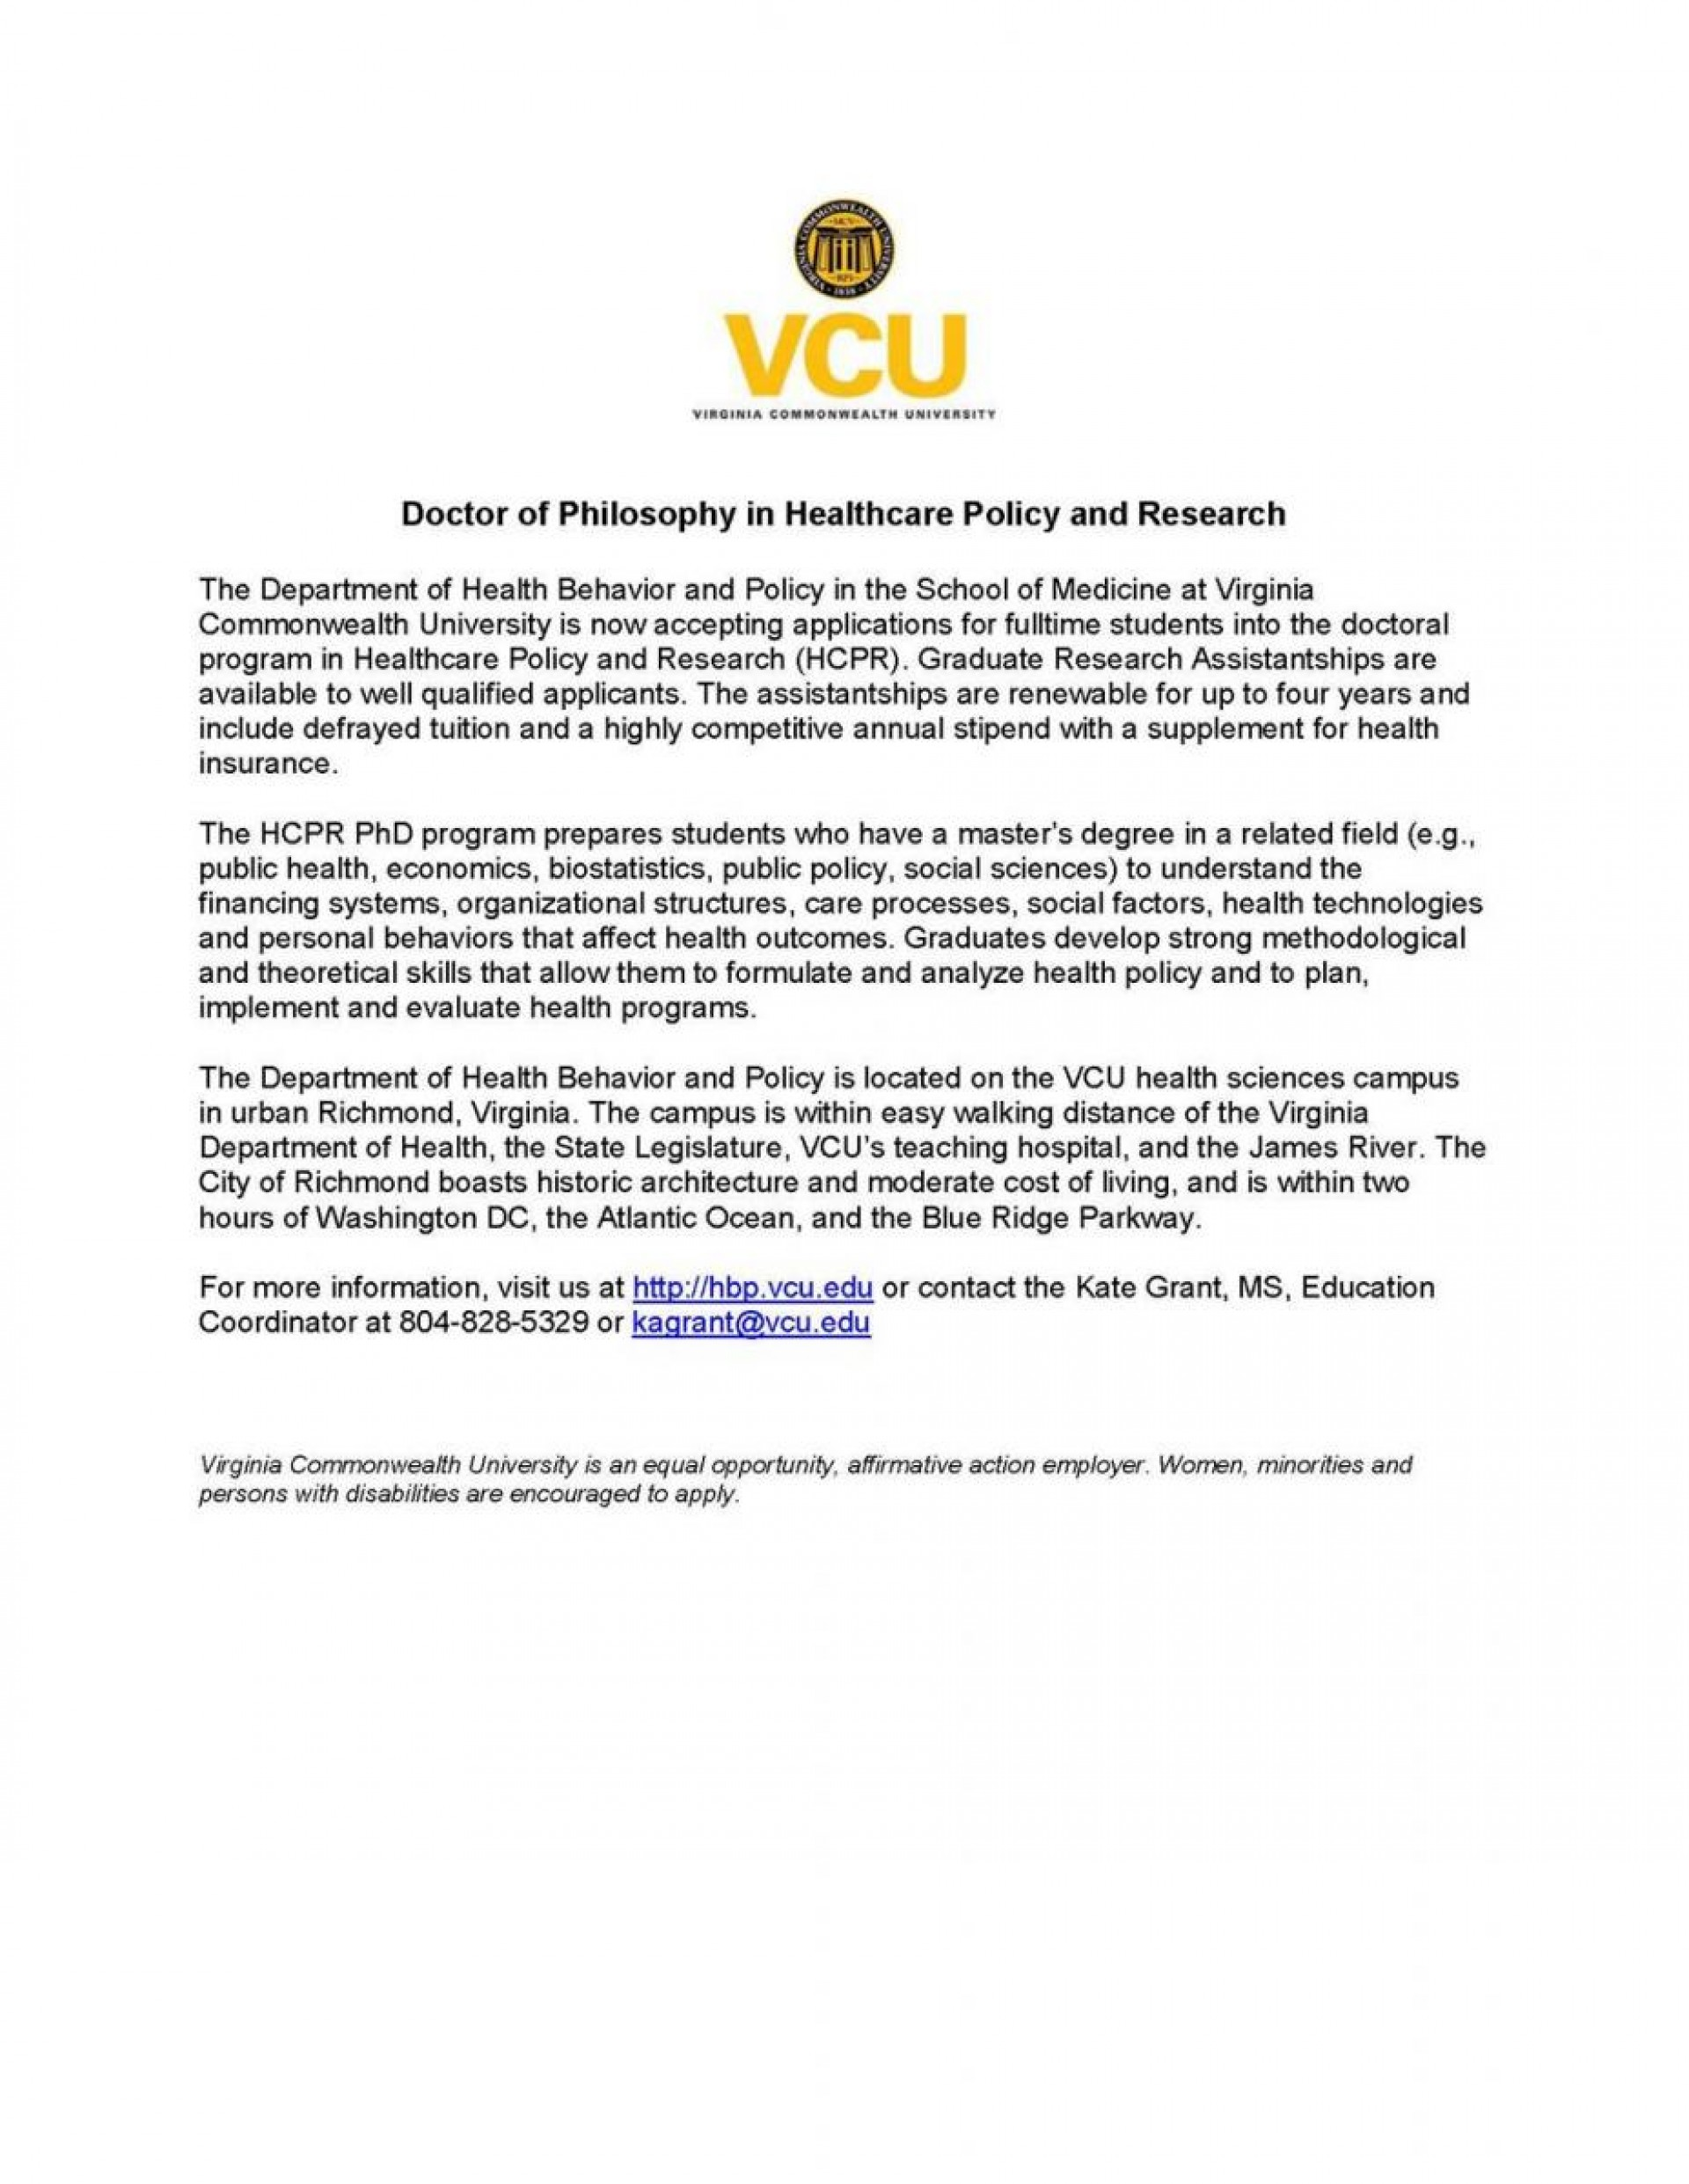 008 Vcu Personal Statement Essay Example Remarkable 1920